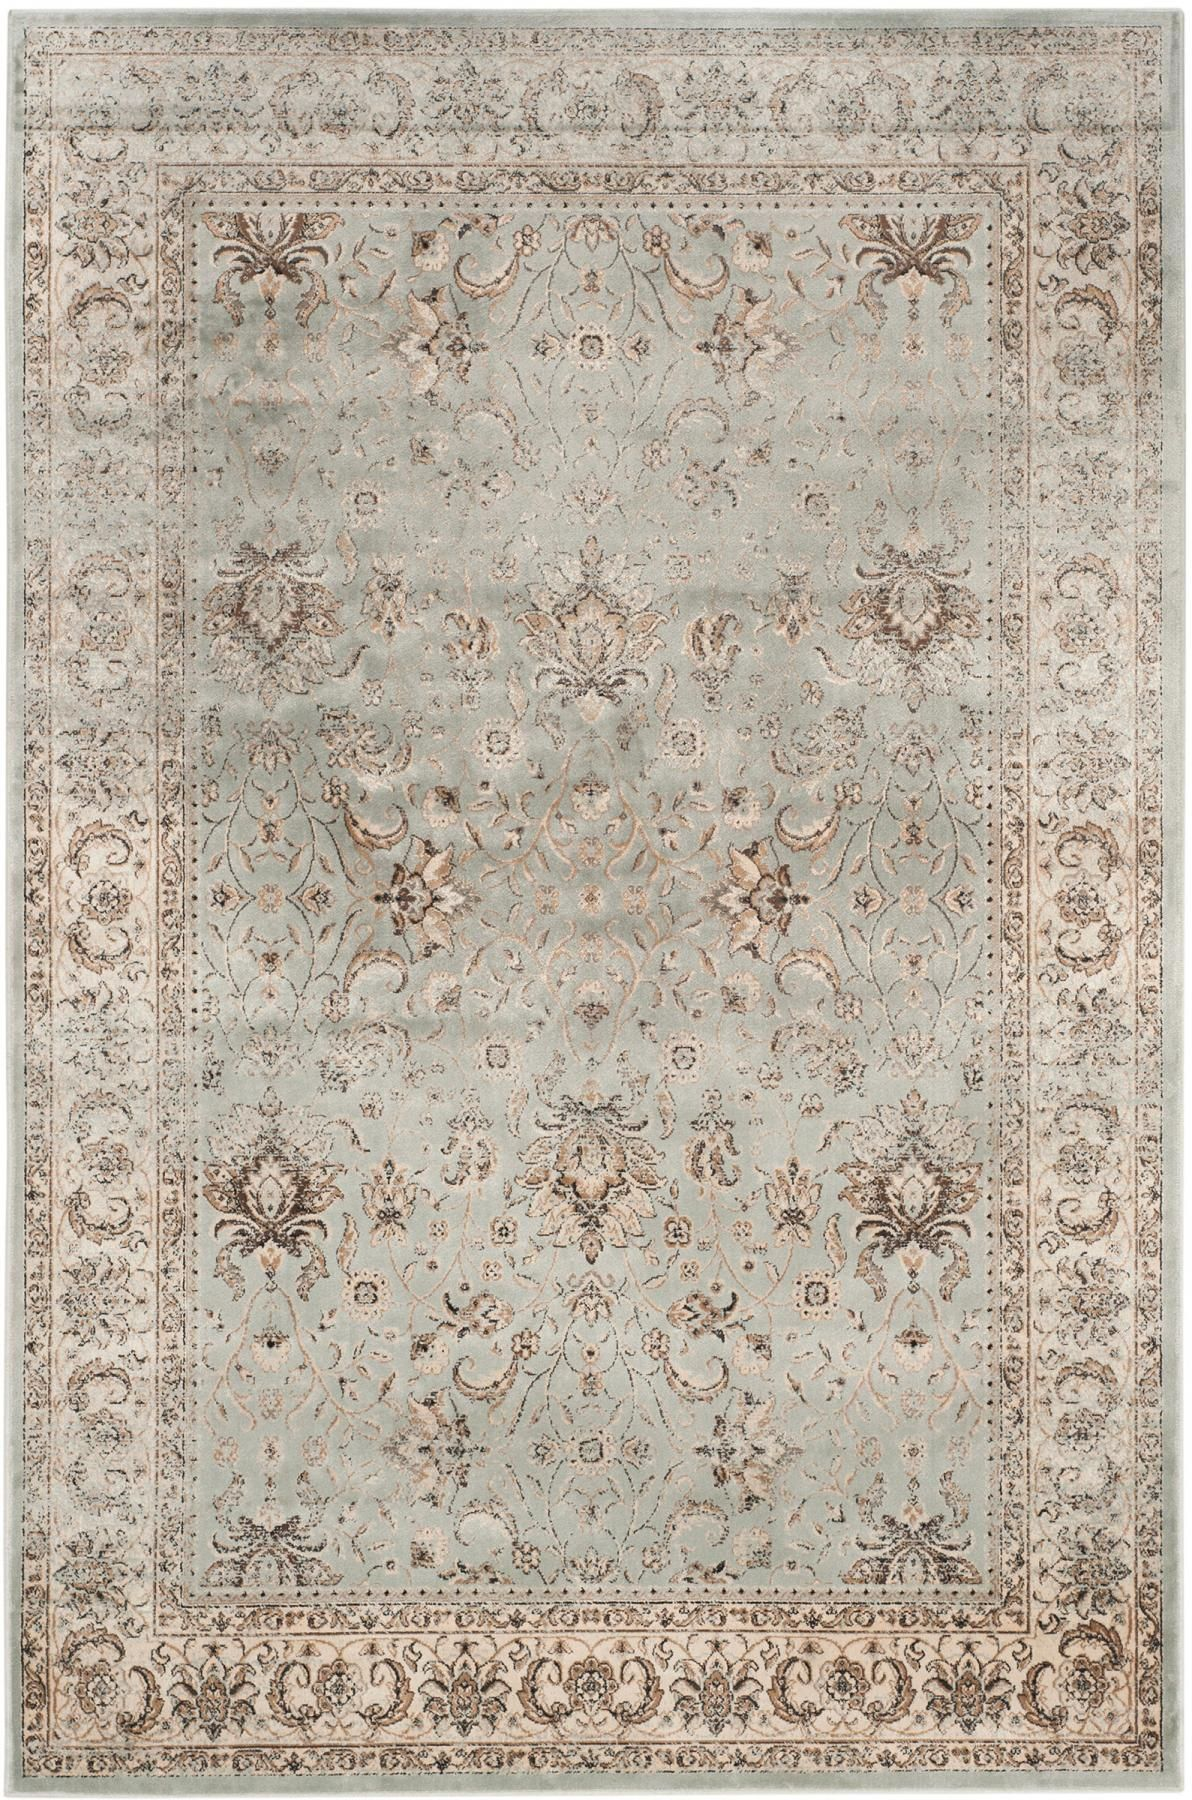 Rug Pgv607f Persian Garden Vintage Area Rugs By Transitional 11x8 Light Pastel Colored